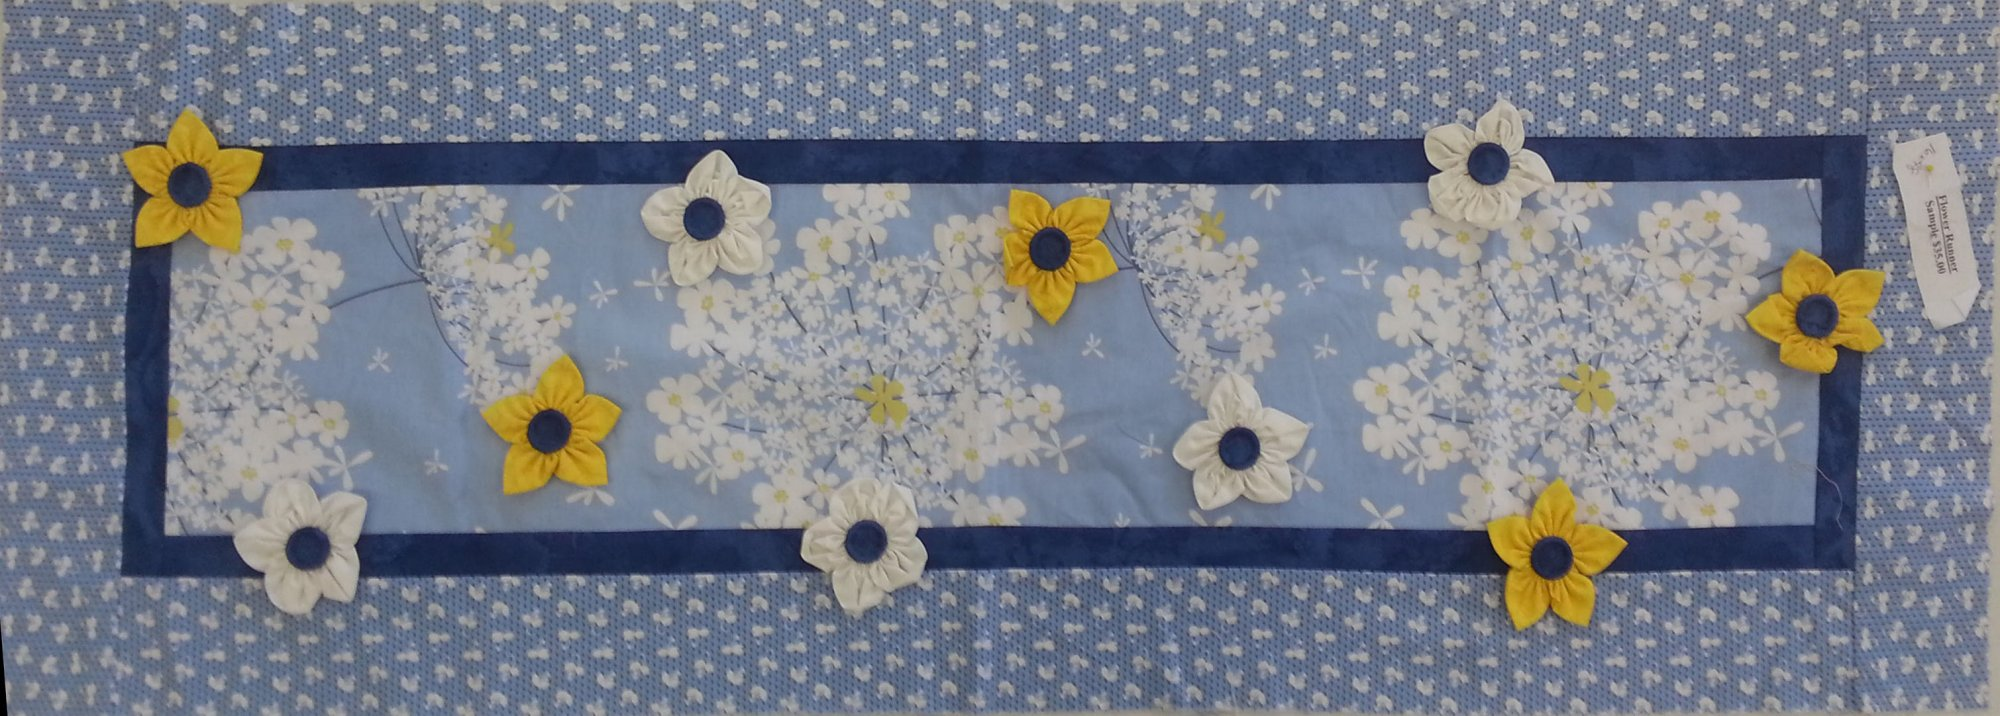 Flower Runner Sample (16 x 48)